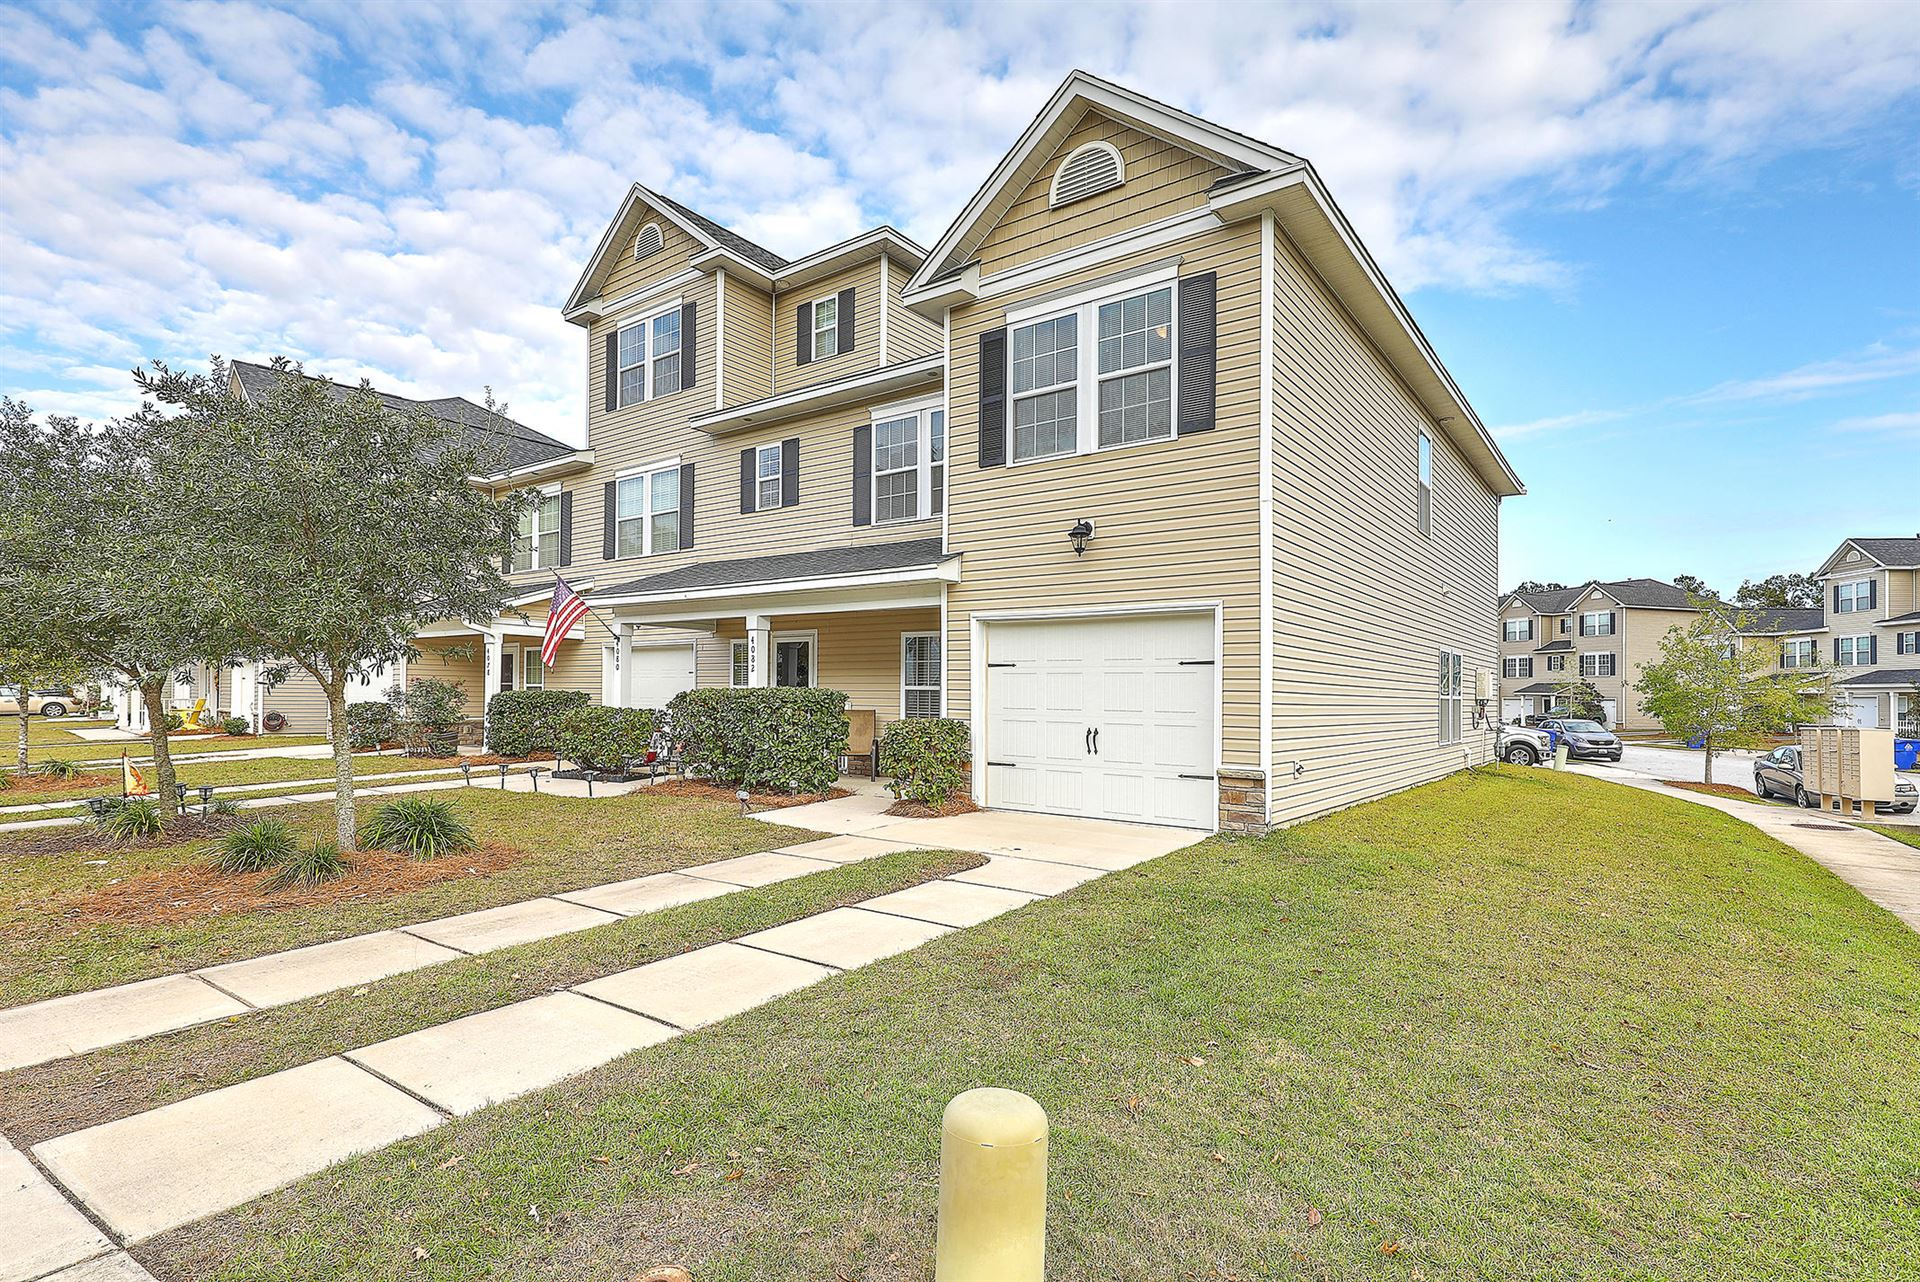 Photo of 4082 Hartland Street, Charleston, SC 29414 (MLS # 20032104)